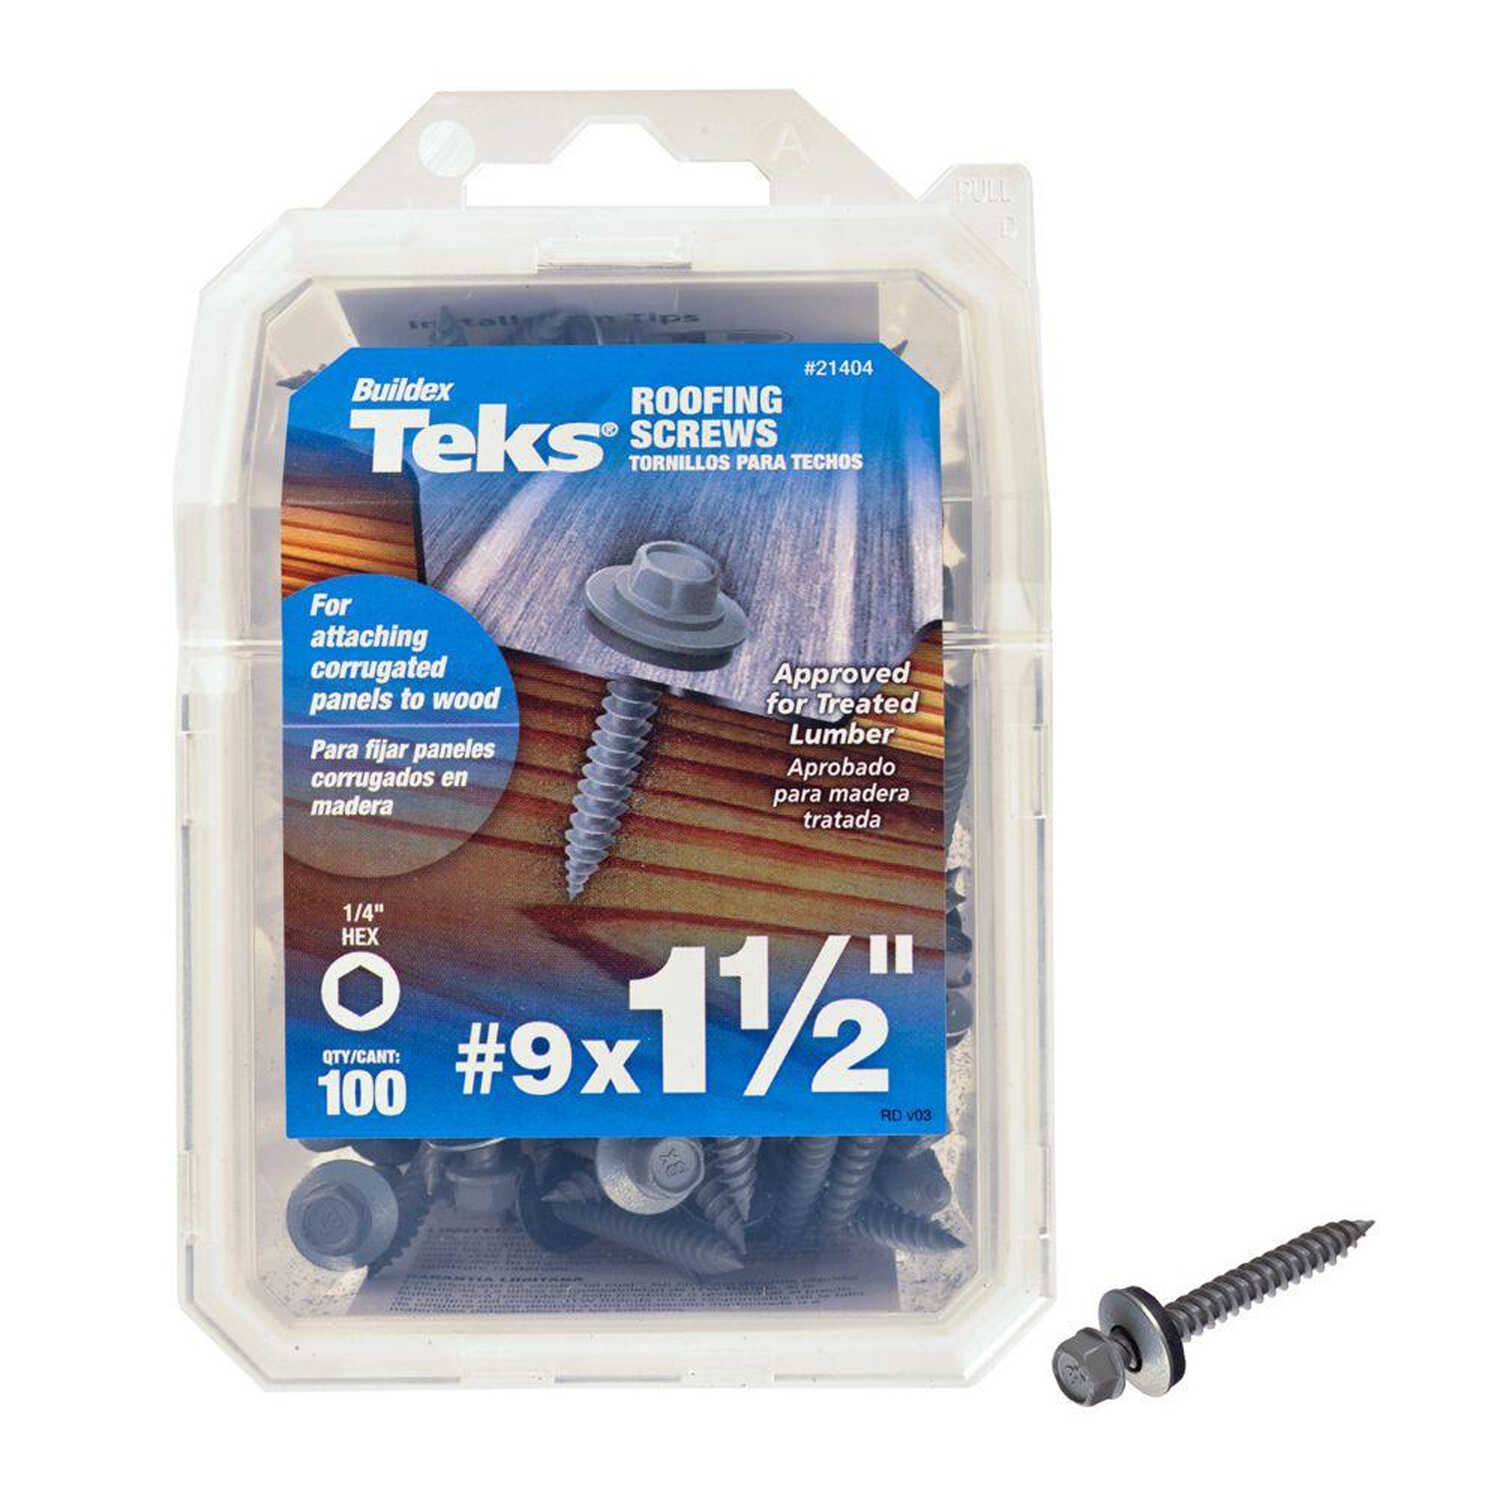 ITW  Teks  No. 9 Sizes  x 1-1/2 in. L Self-Tapping  Hex Washer  Self- Drilling Screws  100 per box S